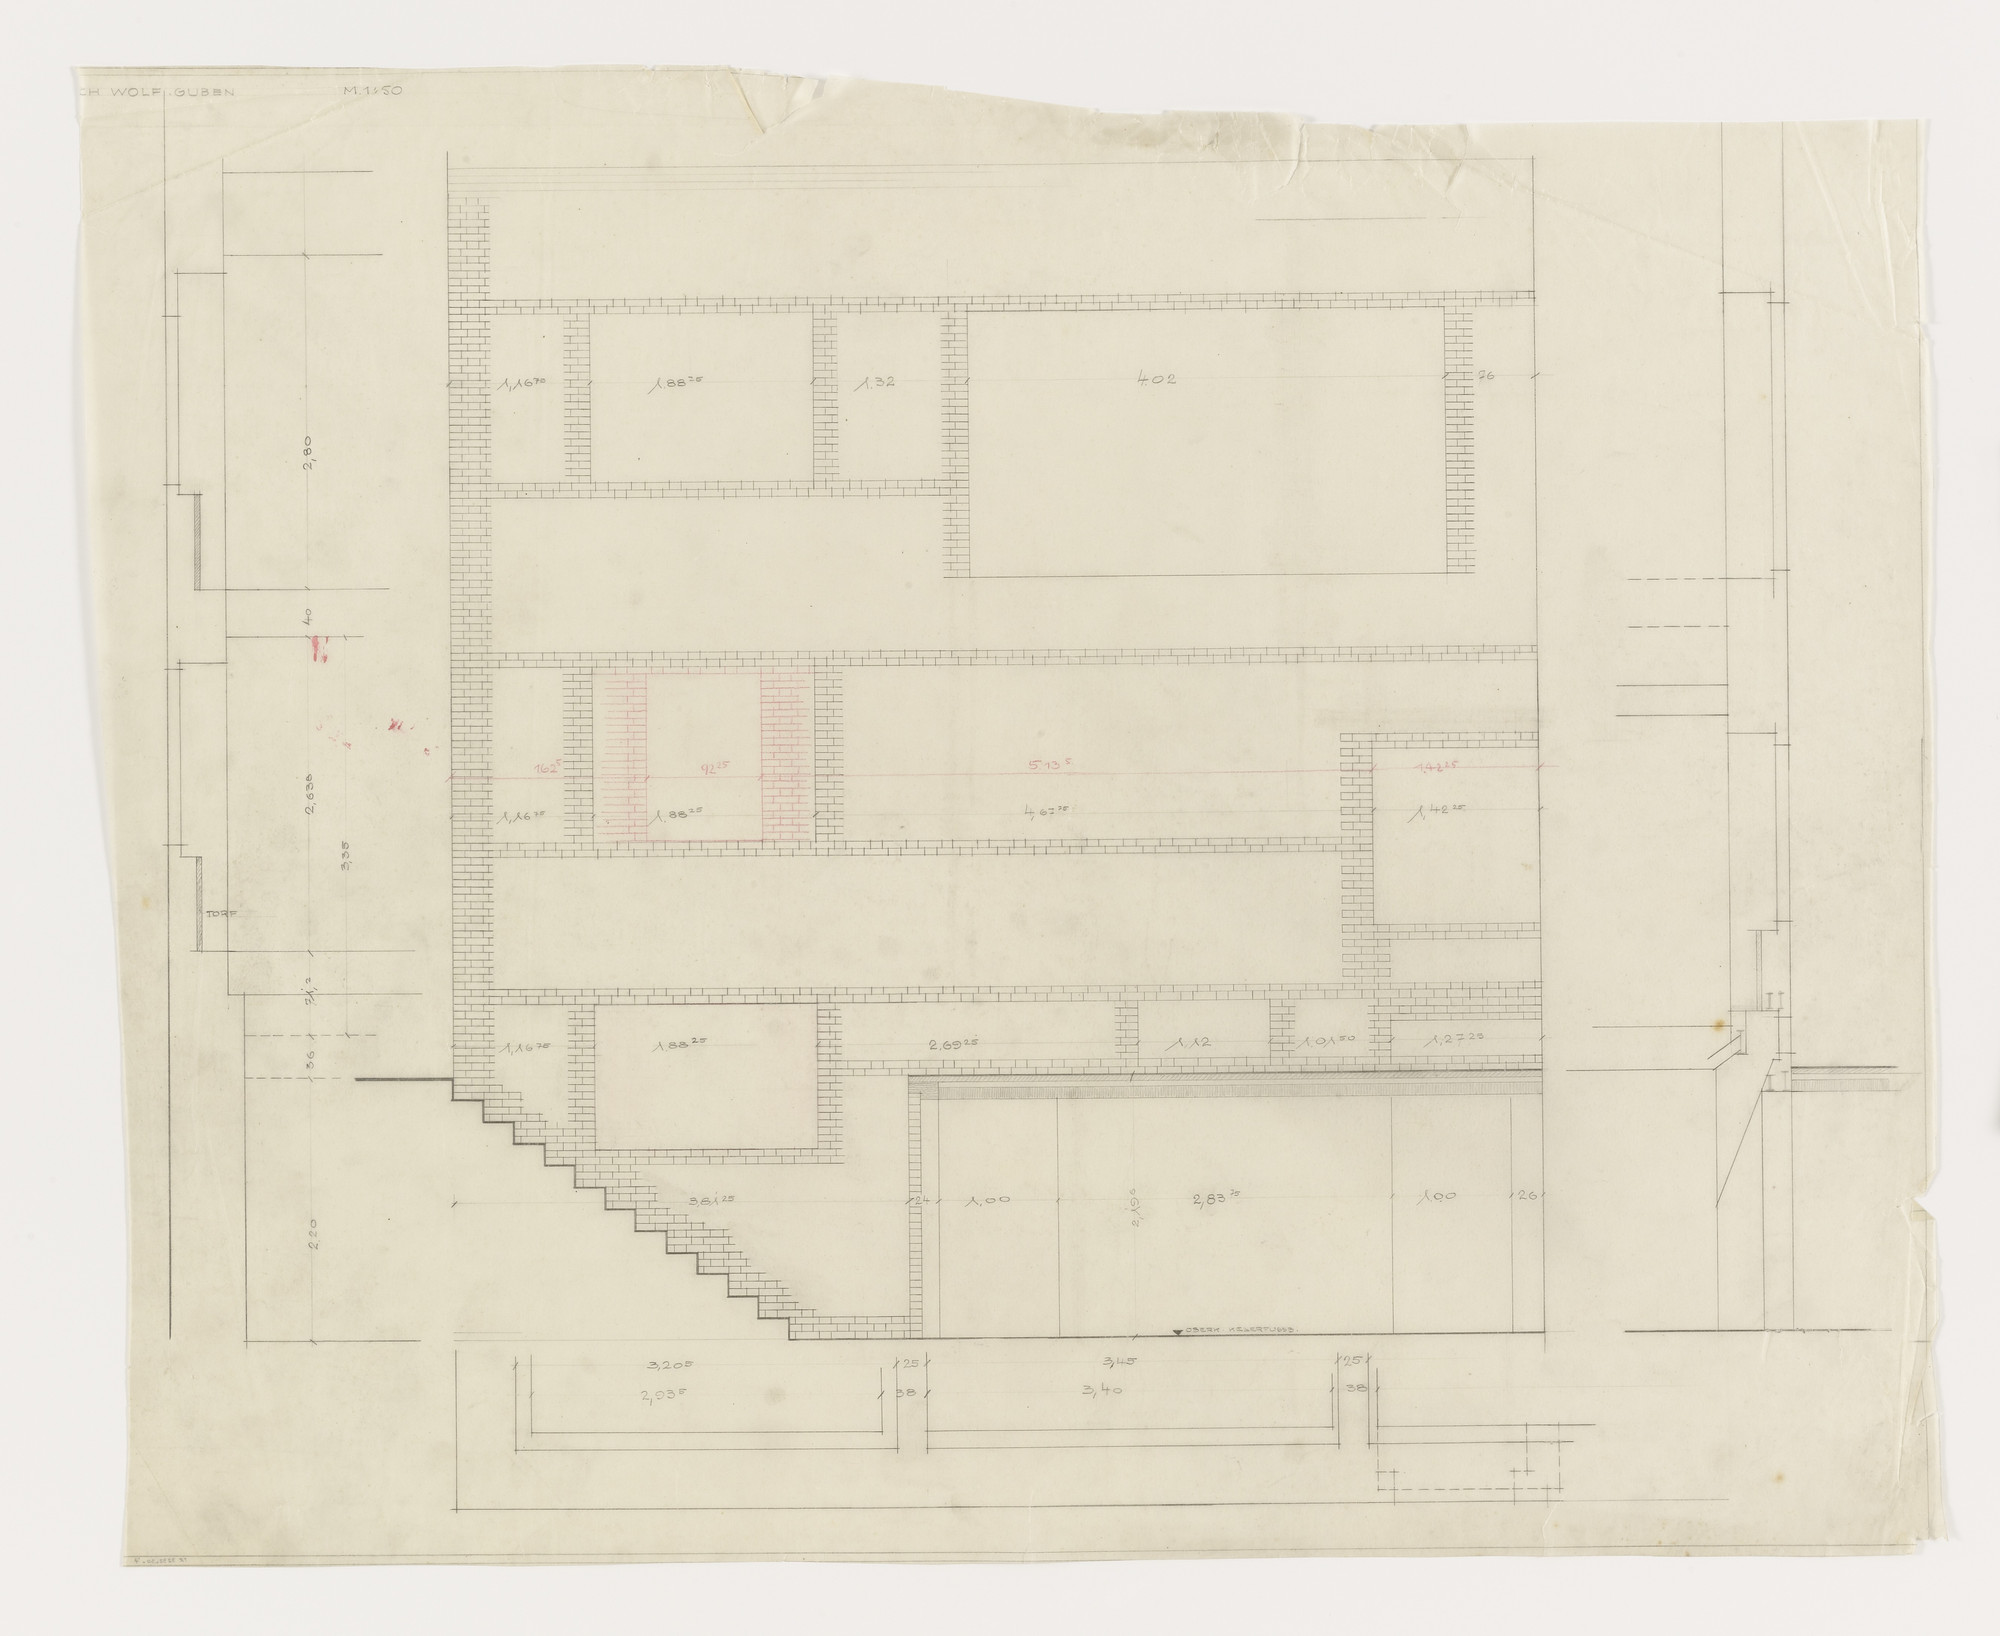 Ludwig Mies van der Rohe. Wolf House, Gubin, Poland (Elevation, plan, section). 1925–1927